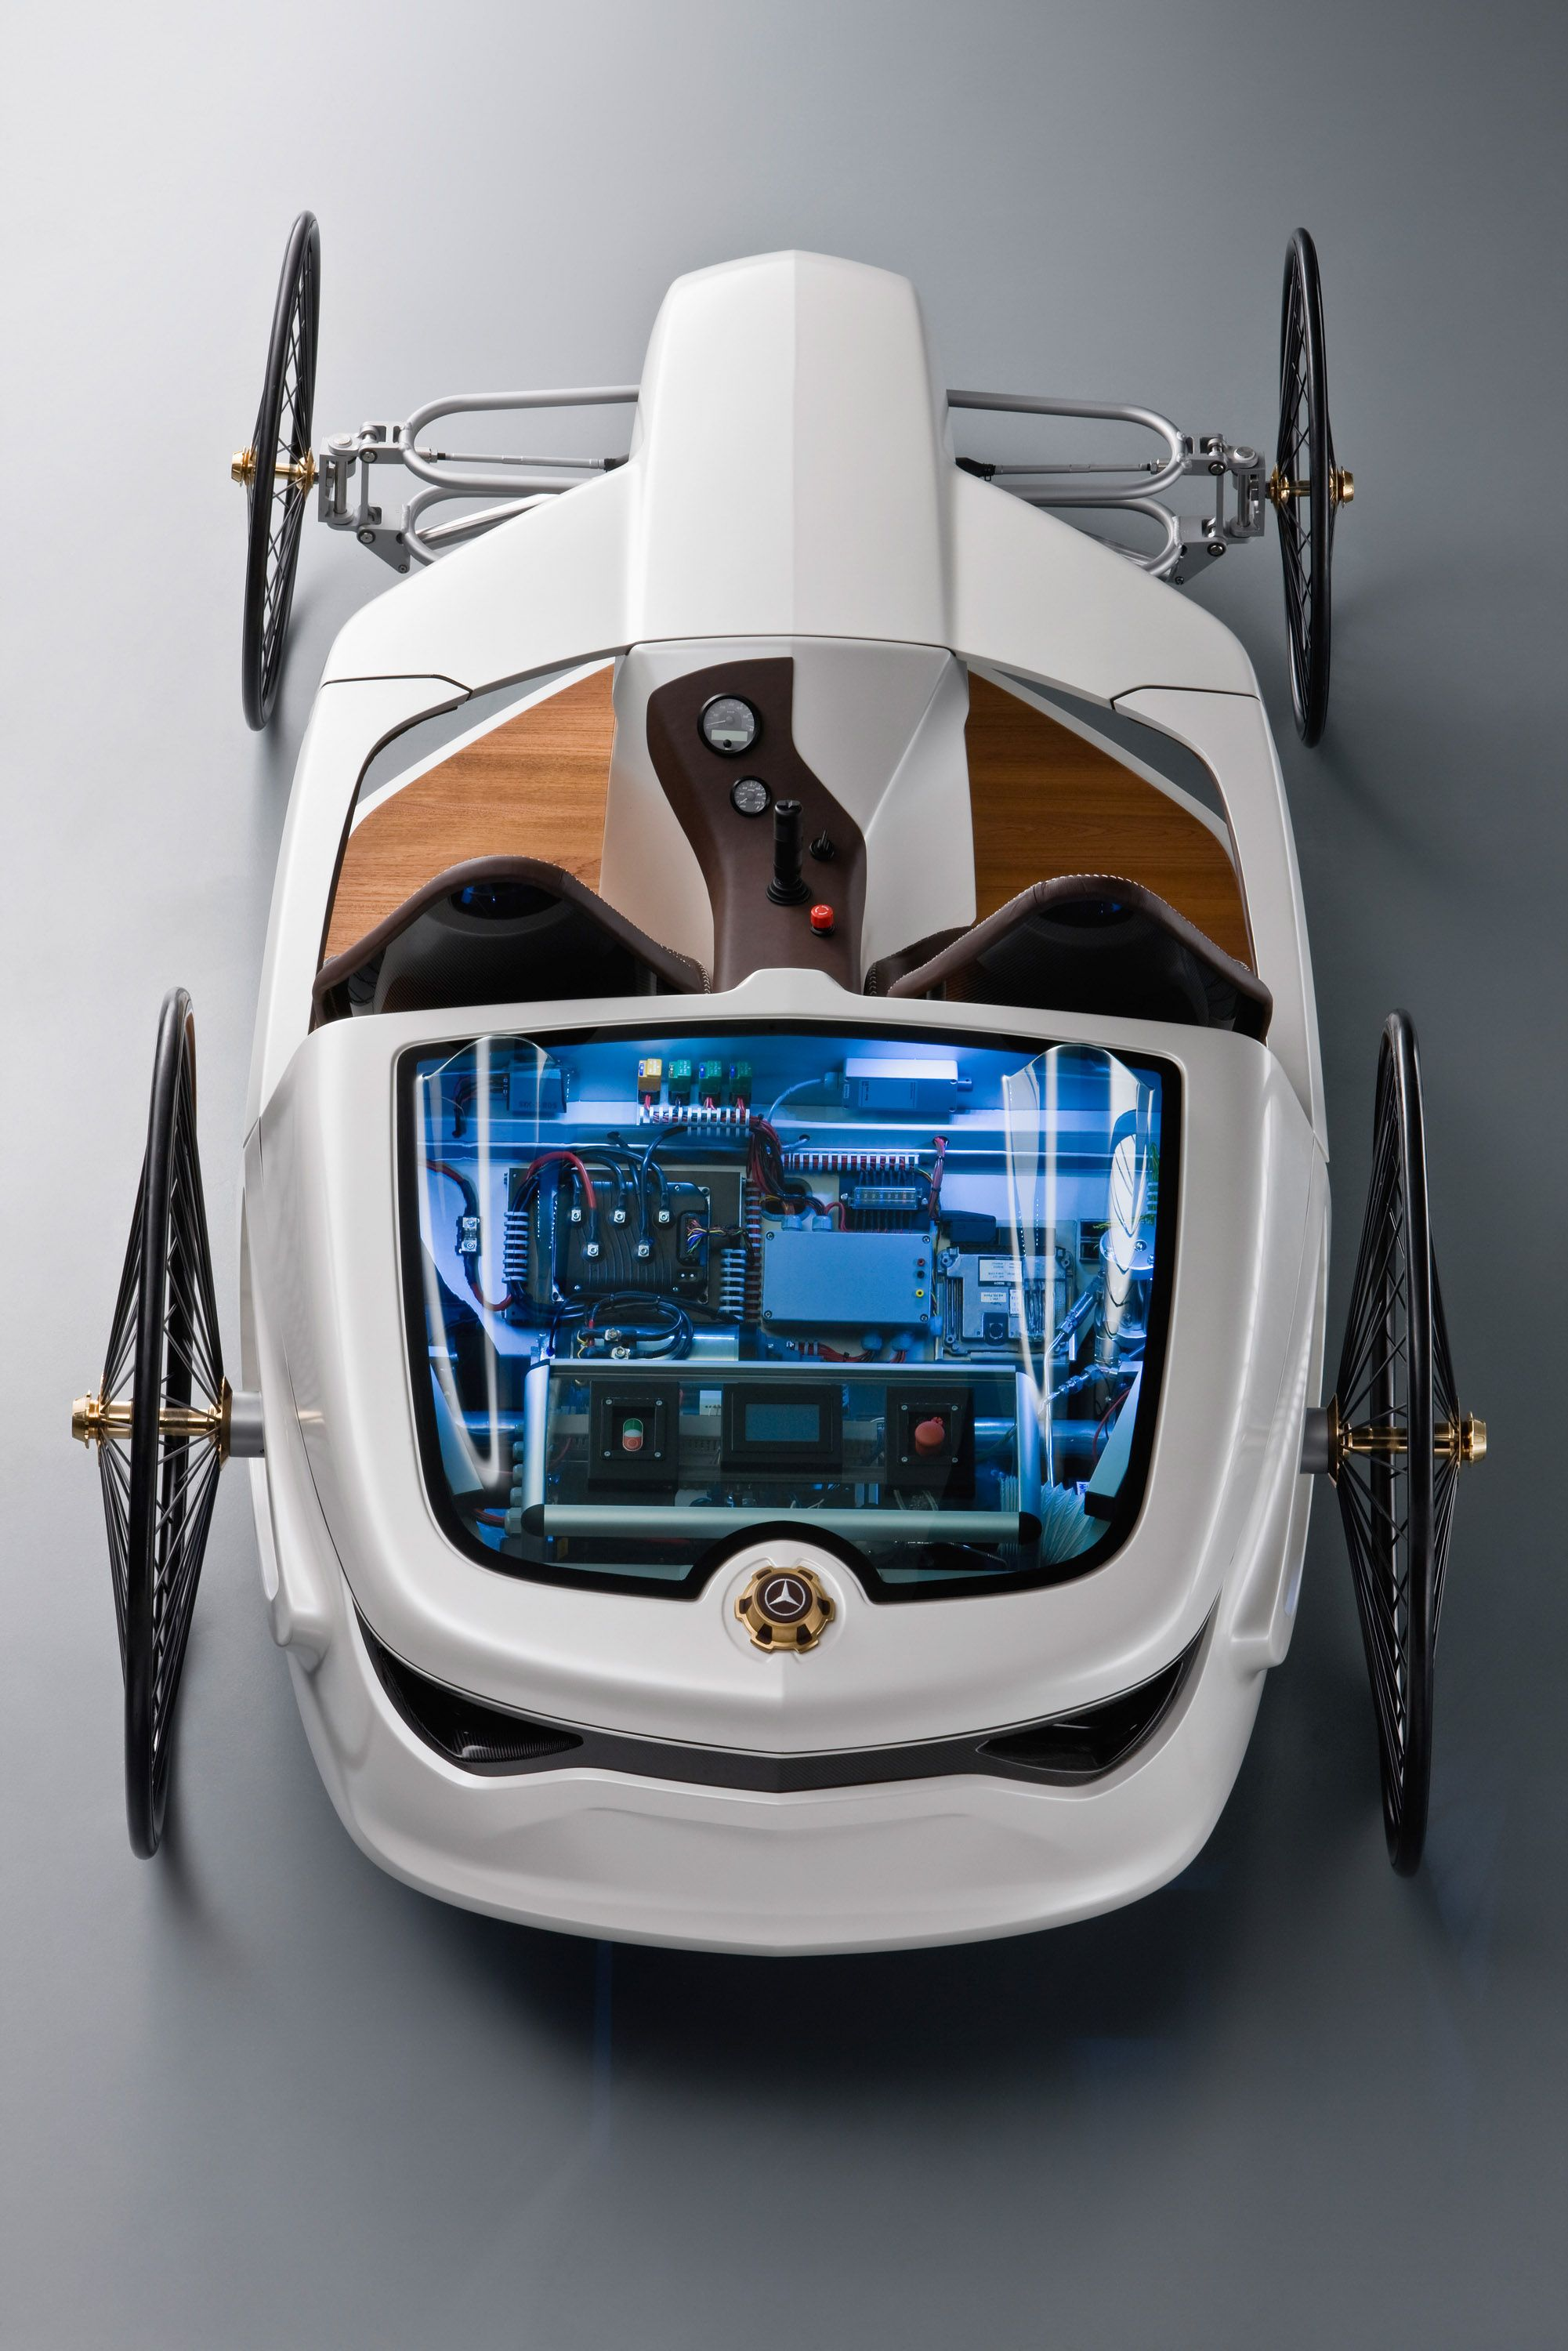 mercedes benz created this joystick controlled fuel cell powered car in 2009 as a homage to the. Black Bedroom Furniture Sets. Home Design Ideas